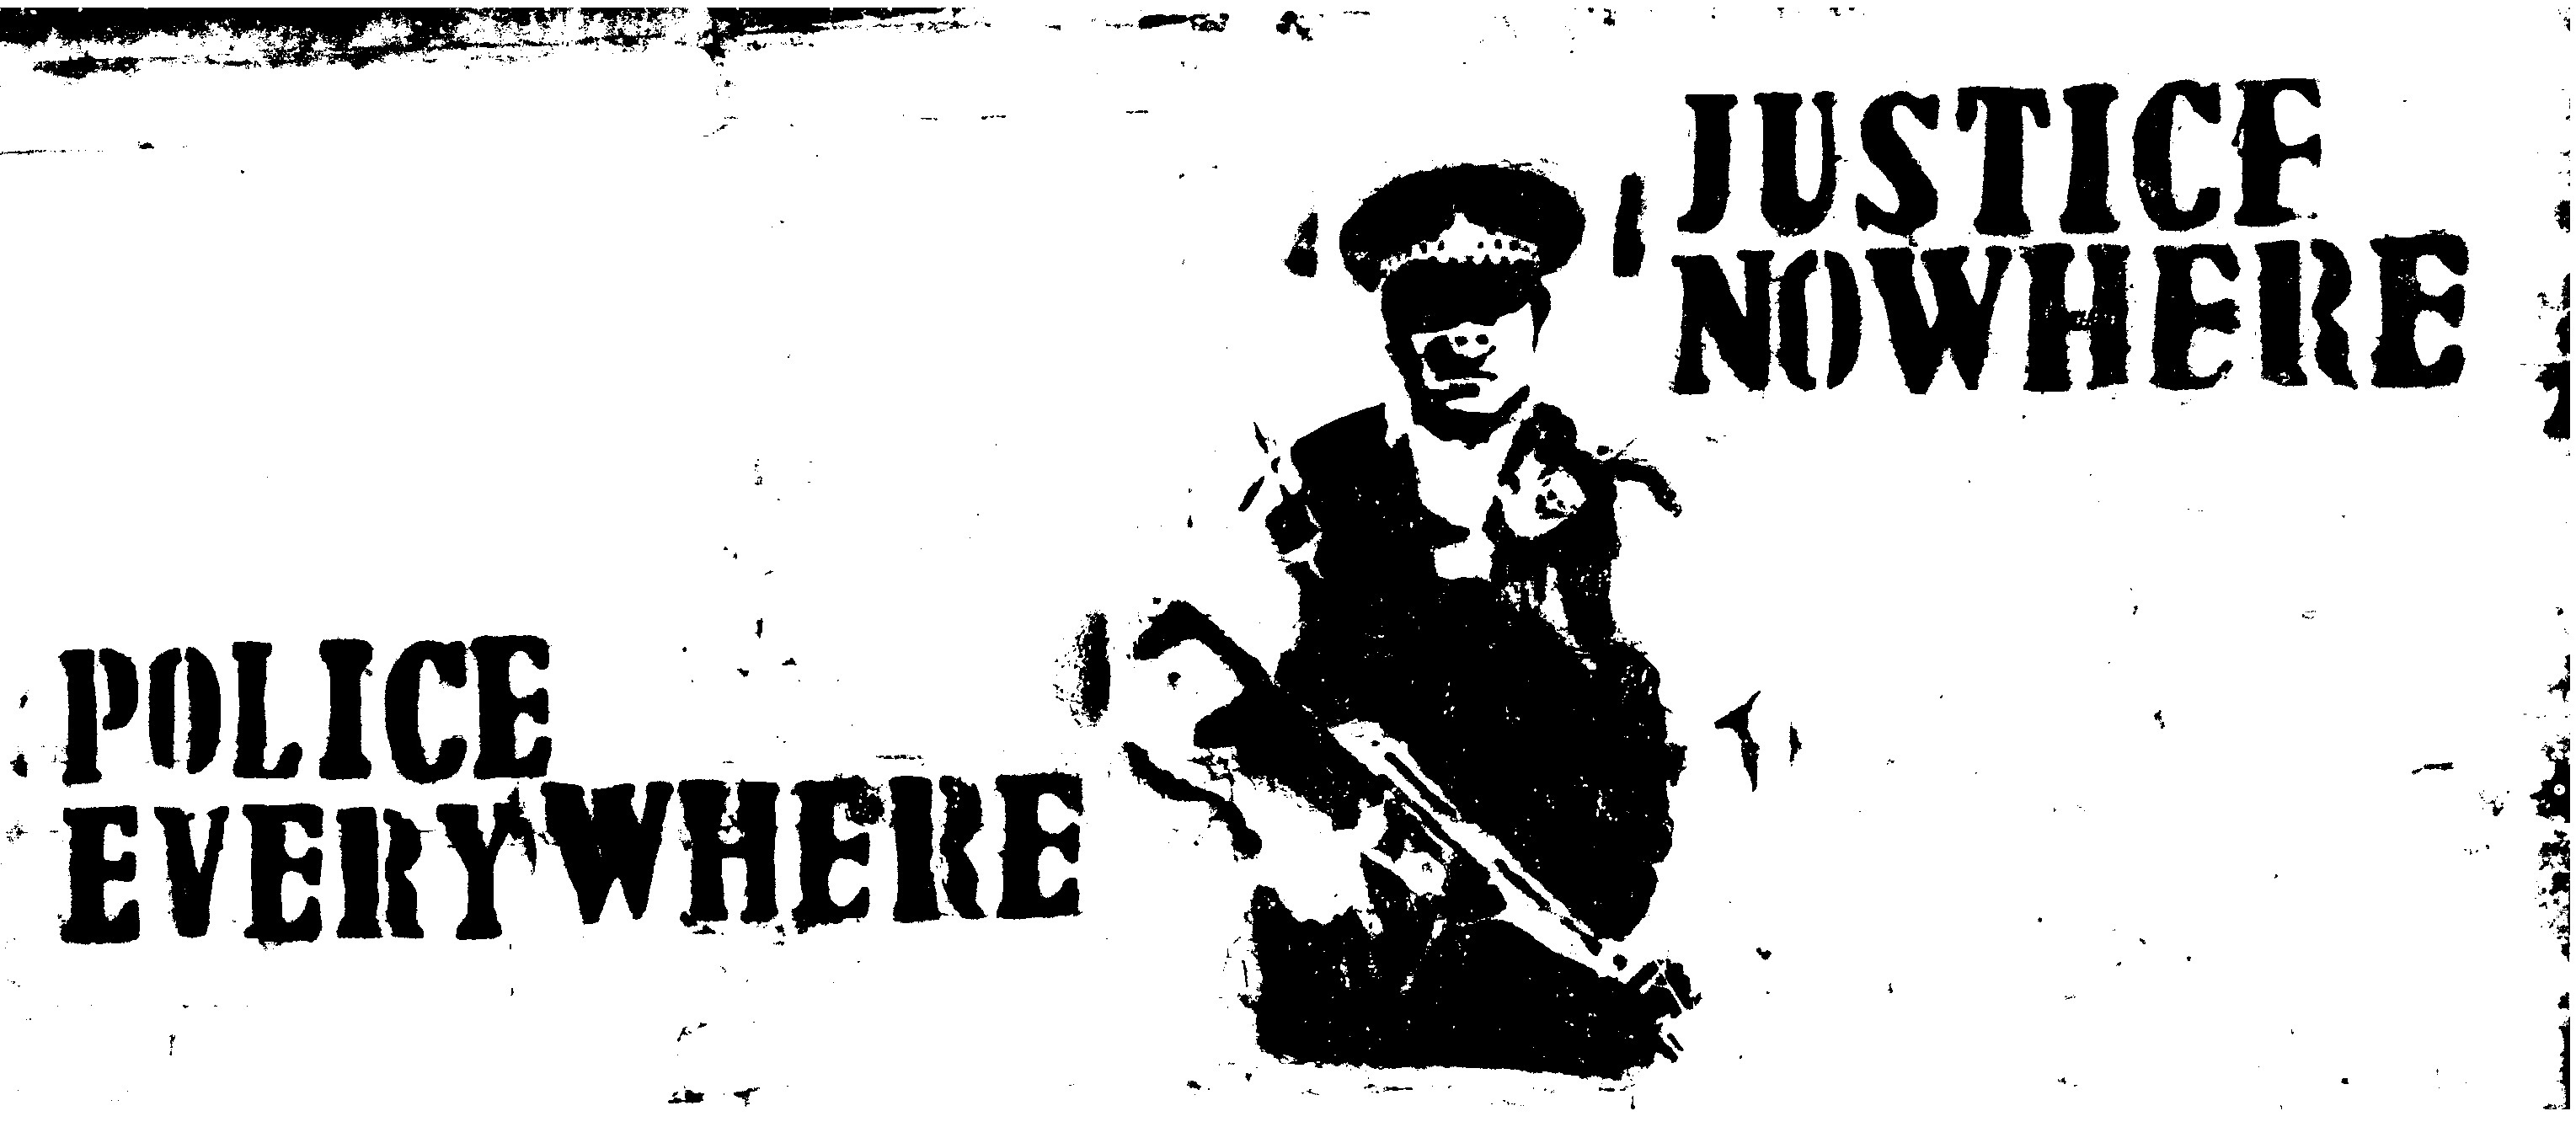 Police Everywhere Justice Nowhere Do You Know What